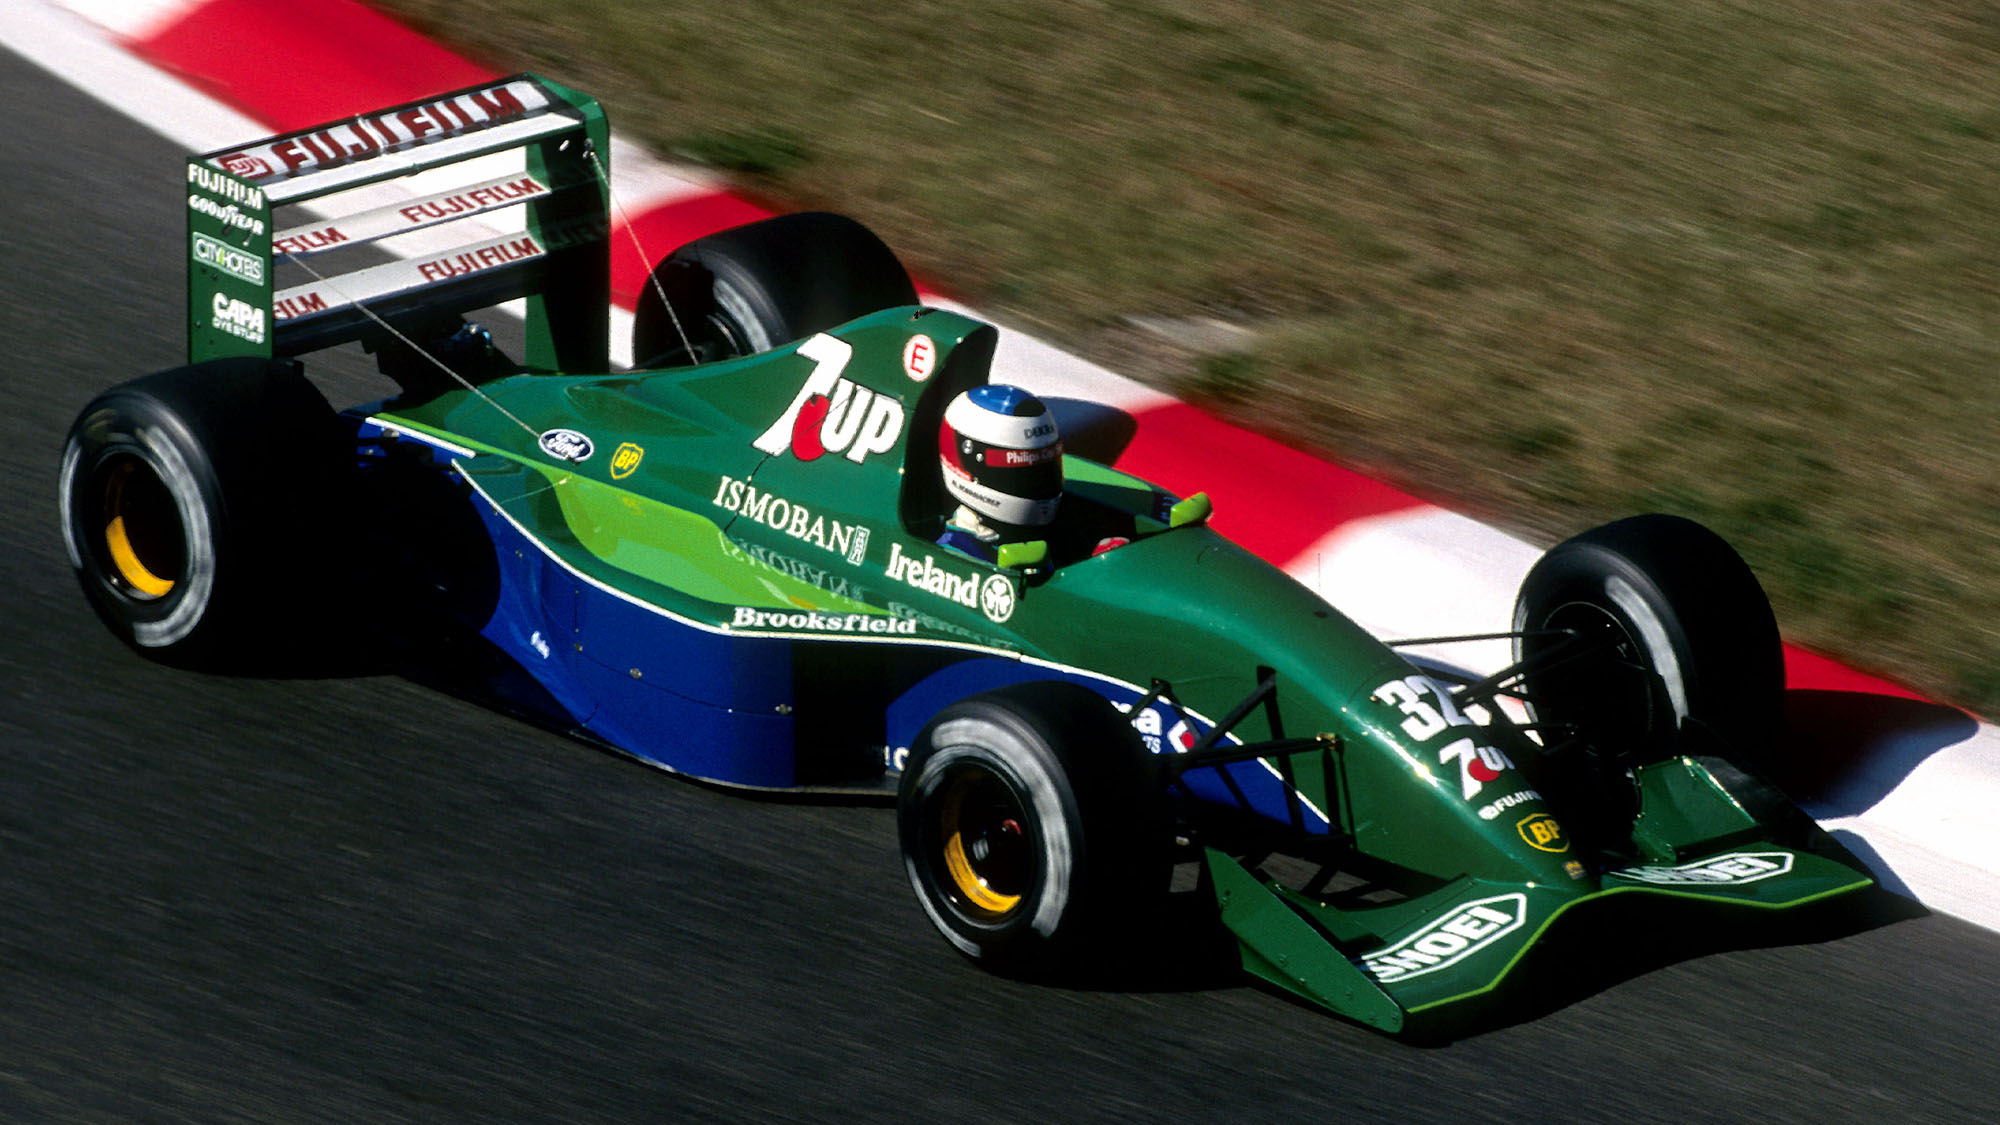 'I had my first F1 car and no money':  Eddie recalls birth of Jordan 191 — 30 years on